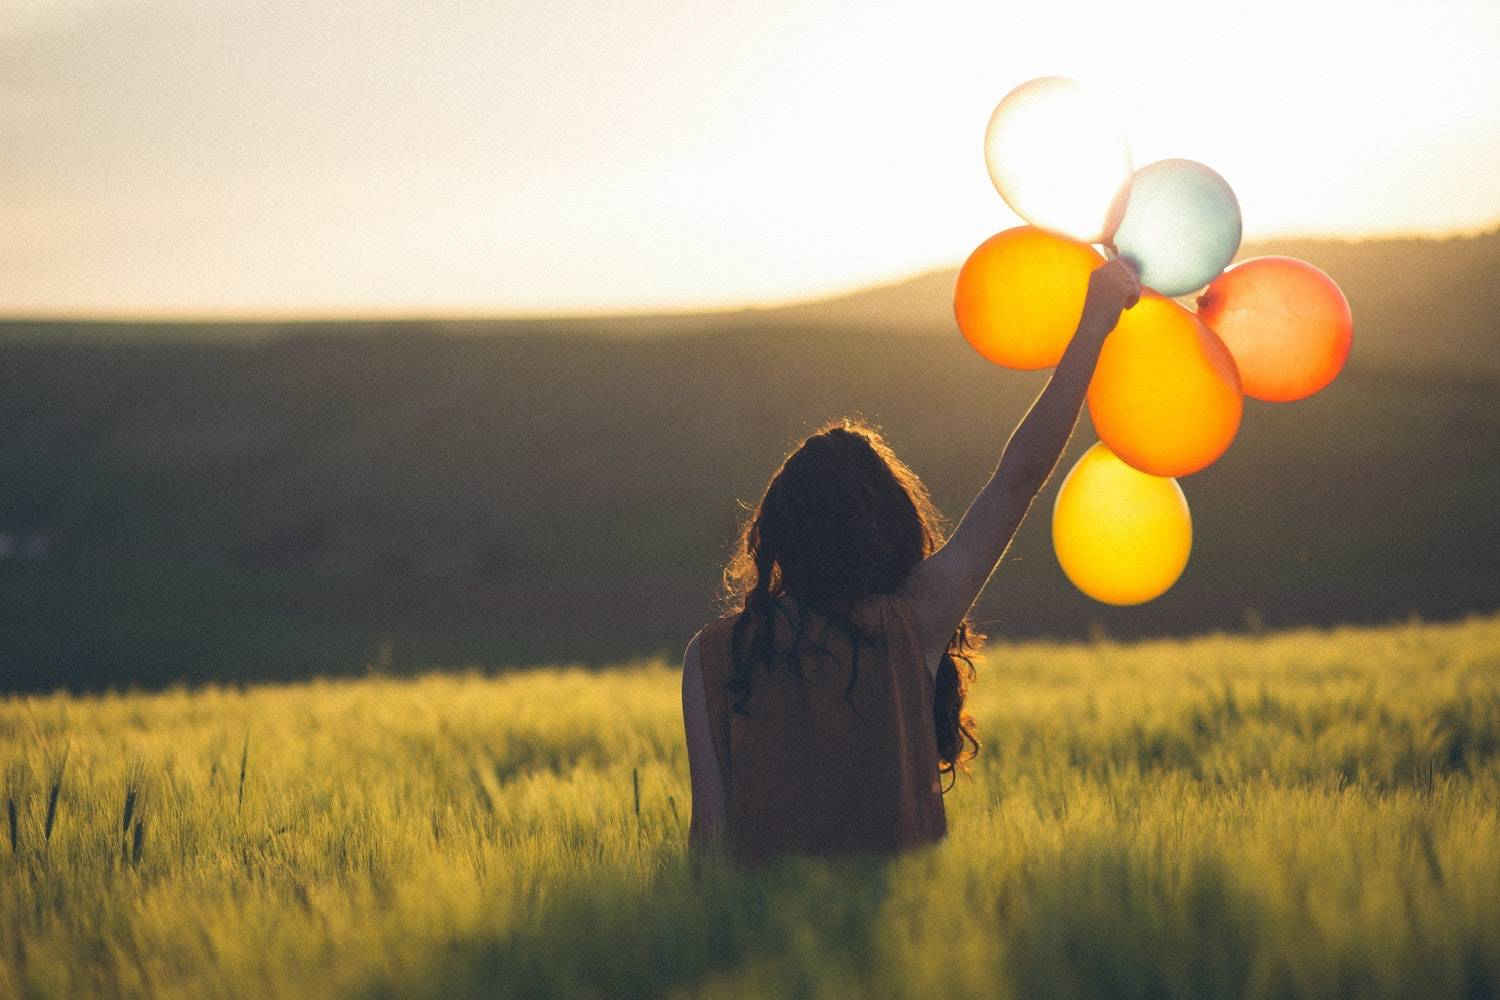 how to find happiness again: woman holding up a bouquet of baloons in a field at sunset